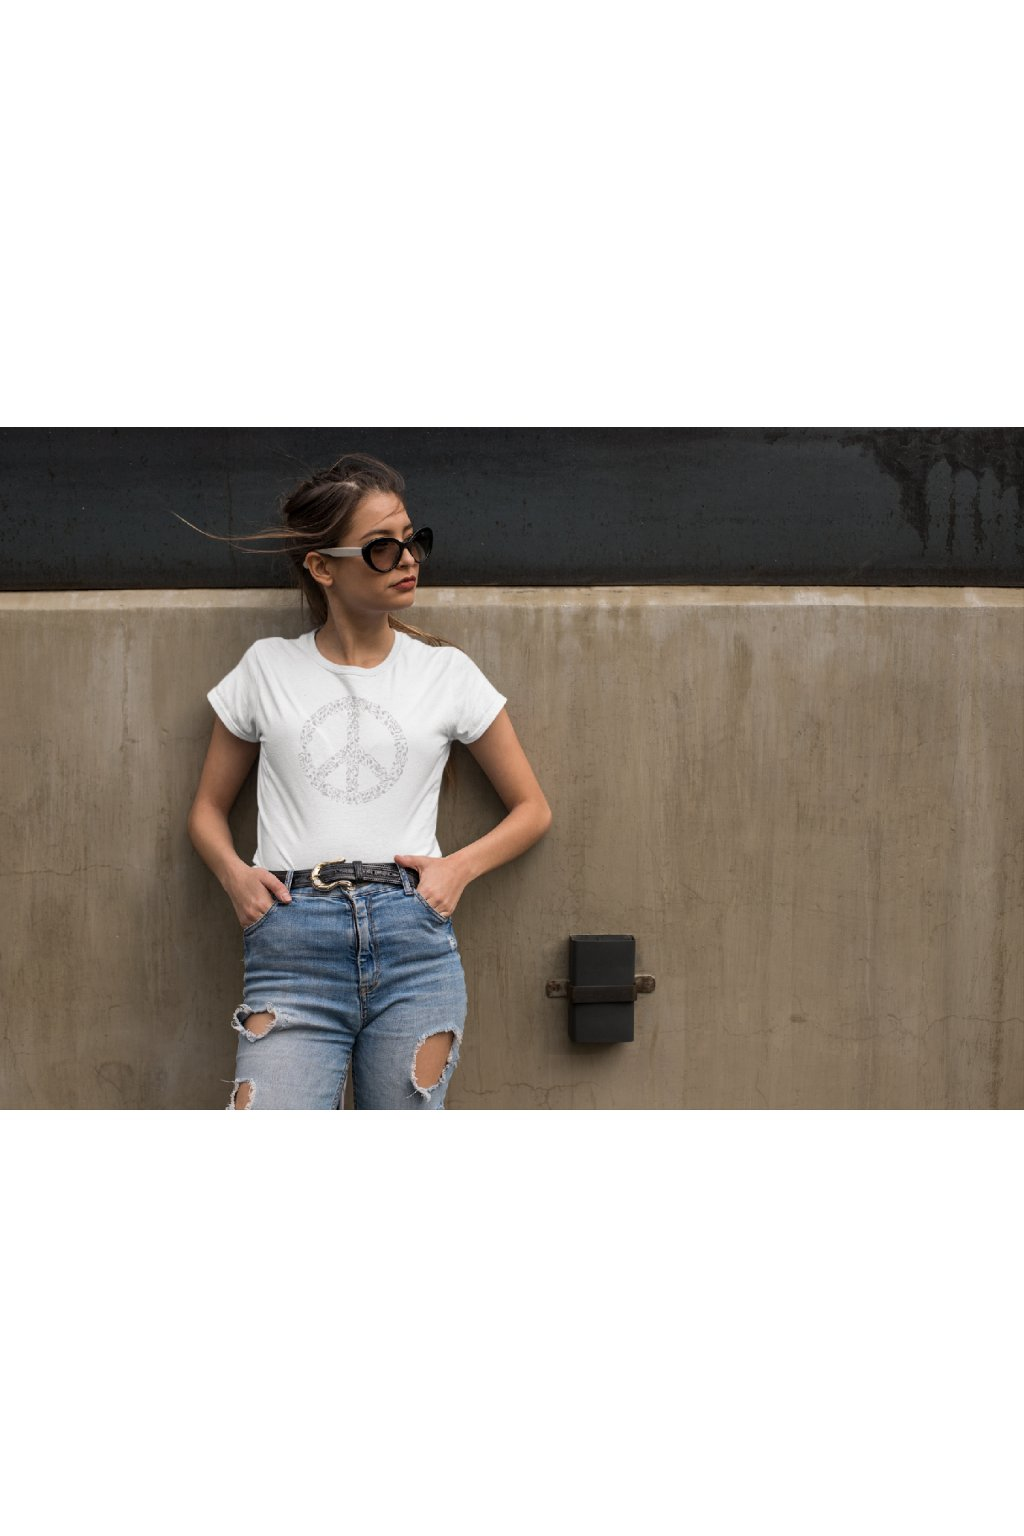 t shirt mockup featuring a cool young woman wearing high rise jeans 24640